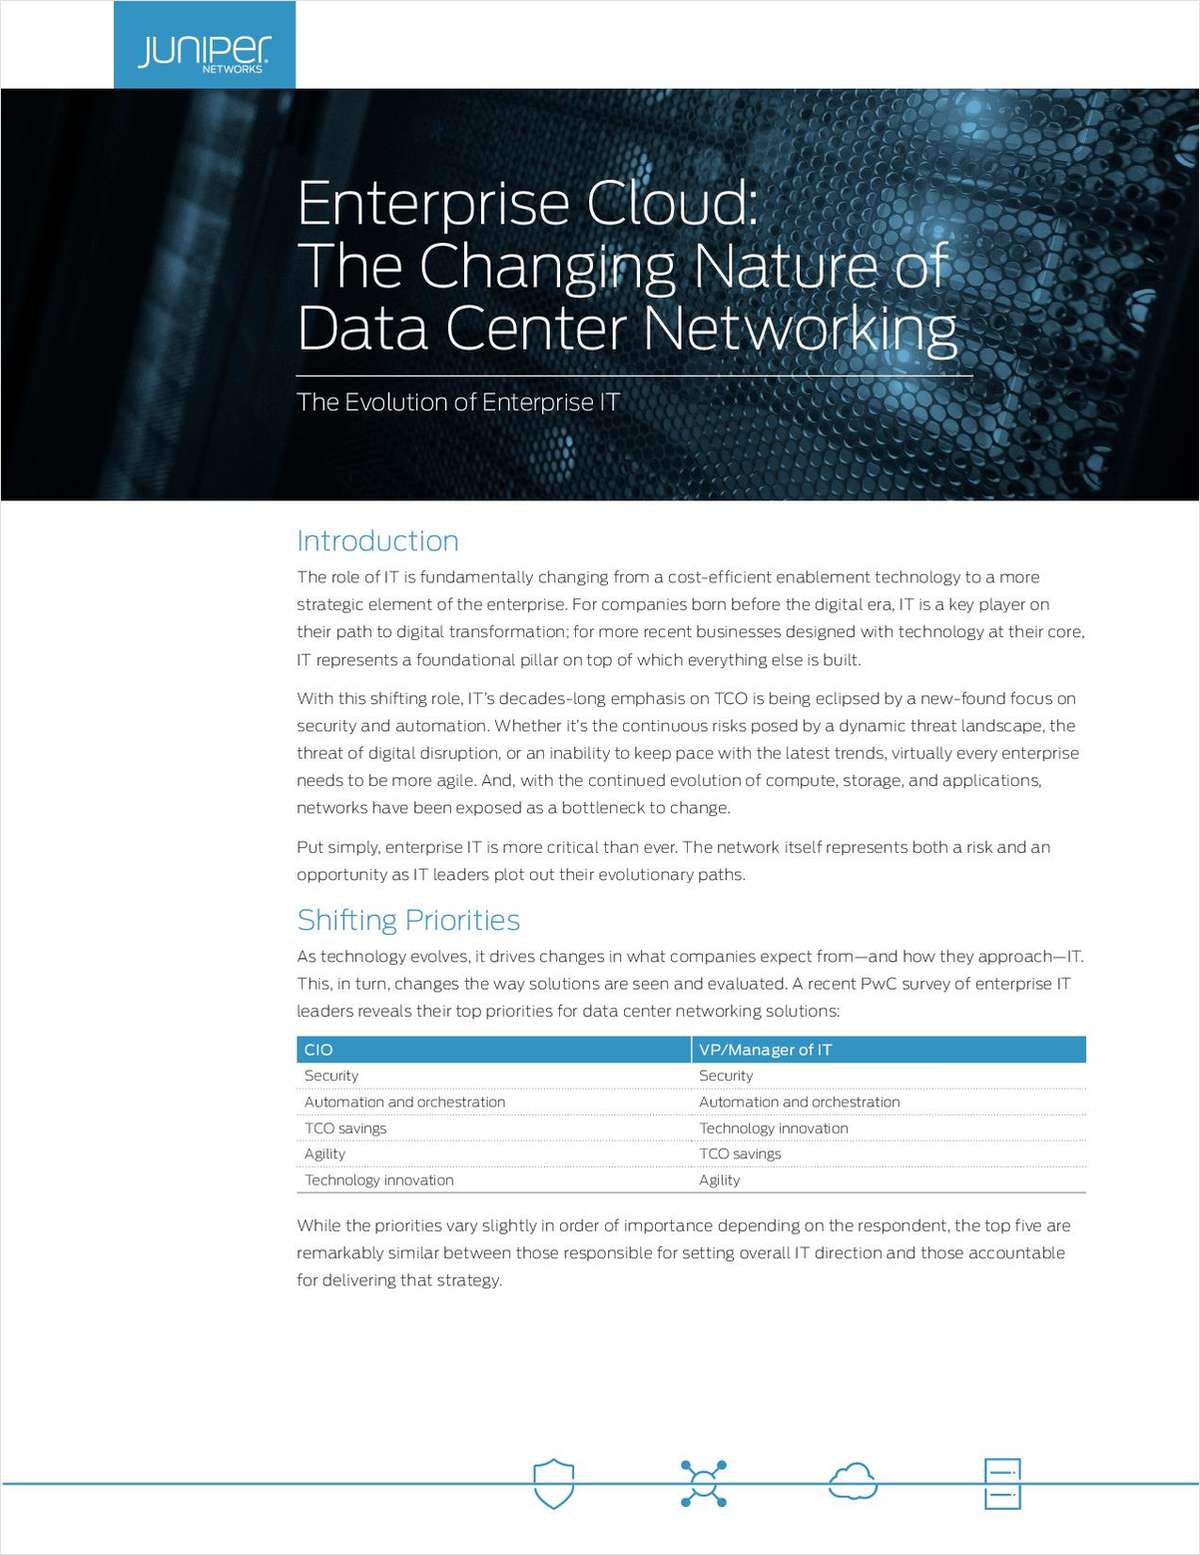 Enterprise Cloud: The Changing Nature of Data Center Networking